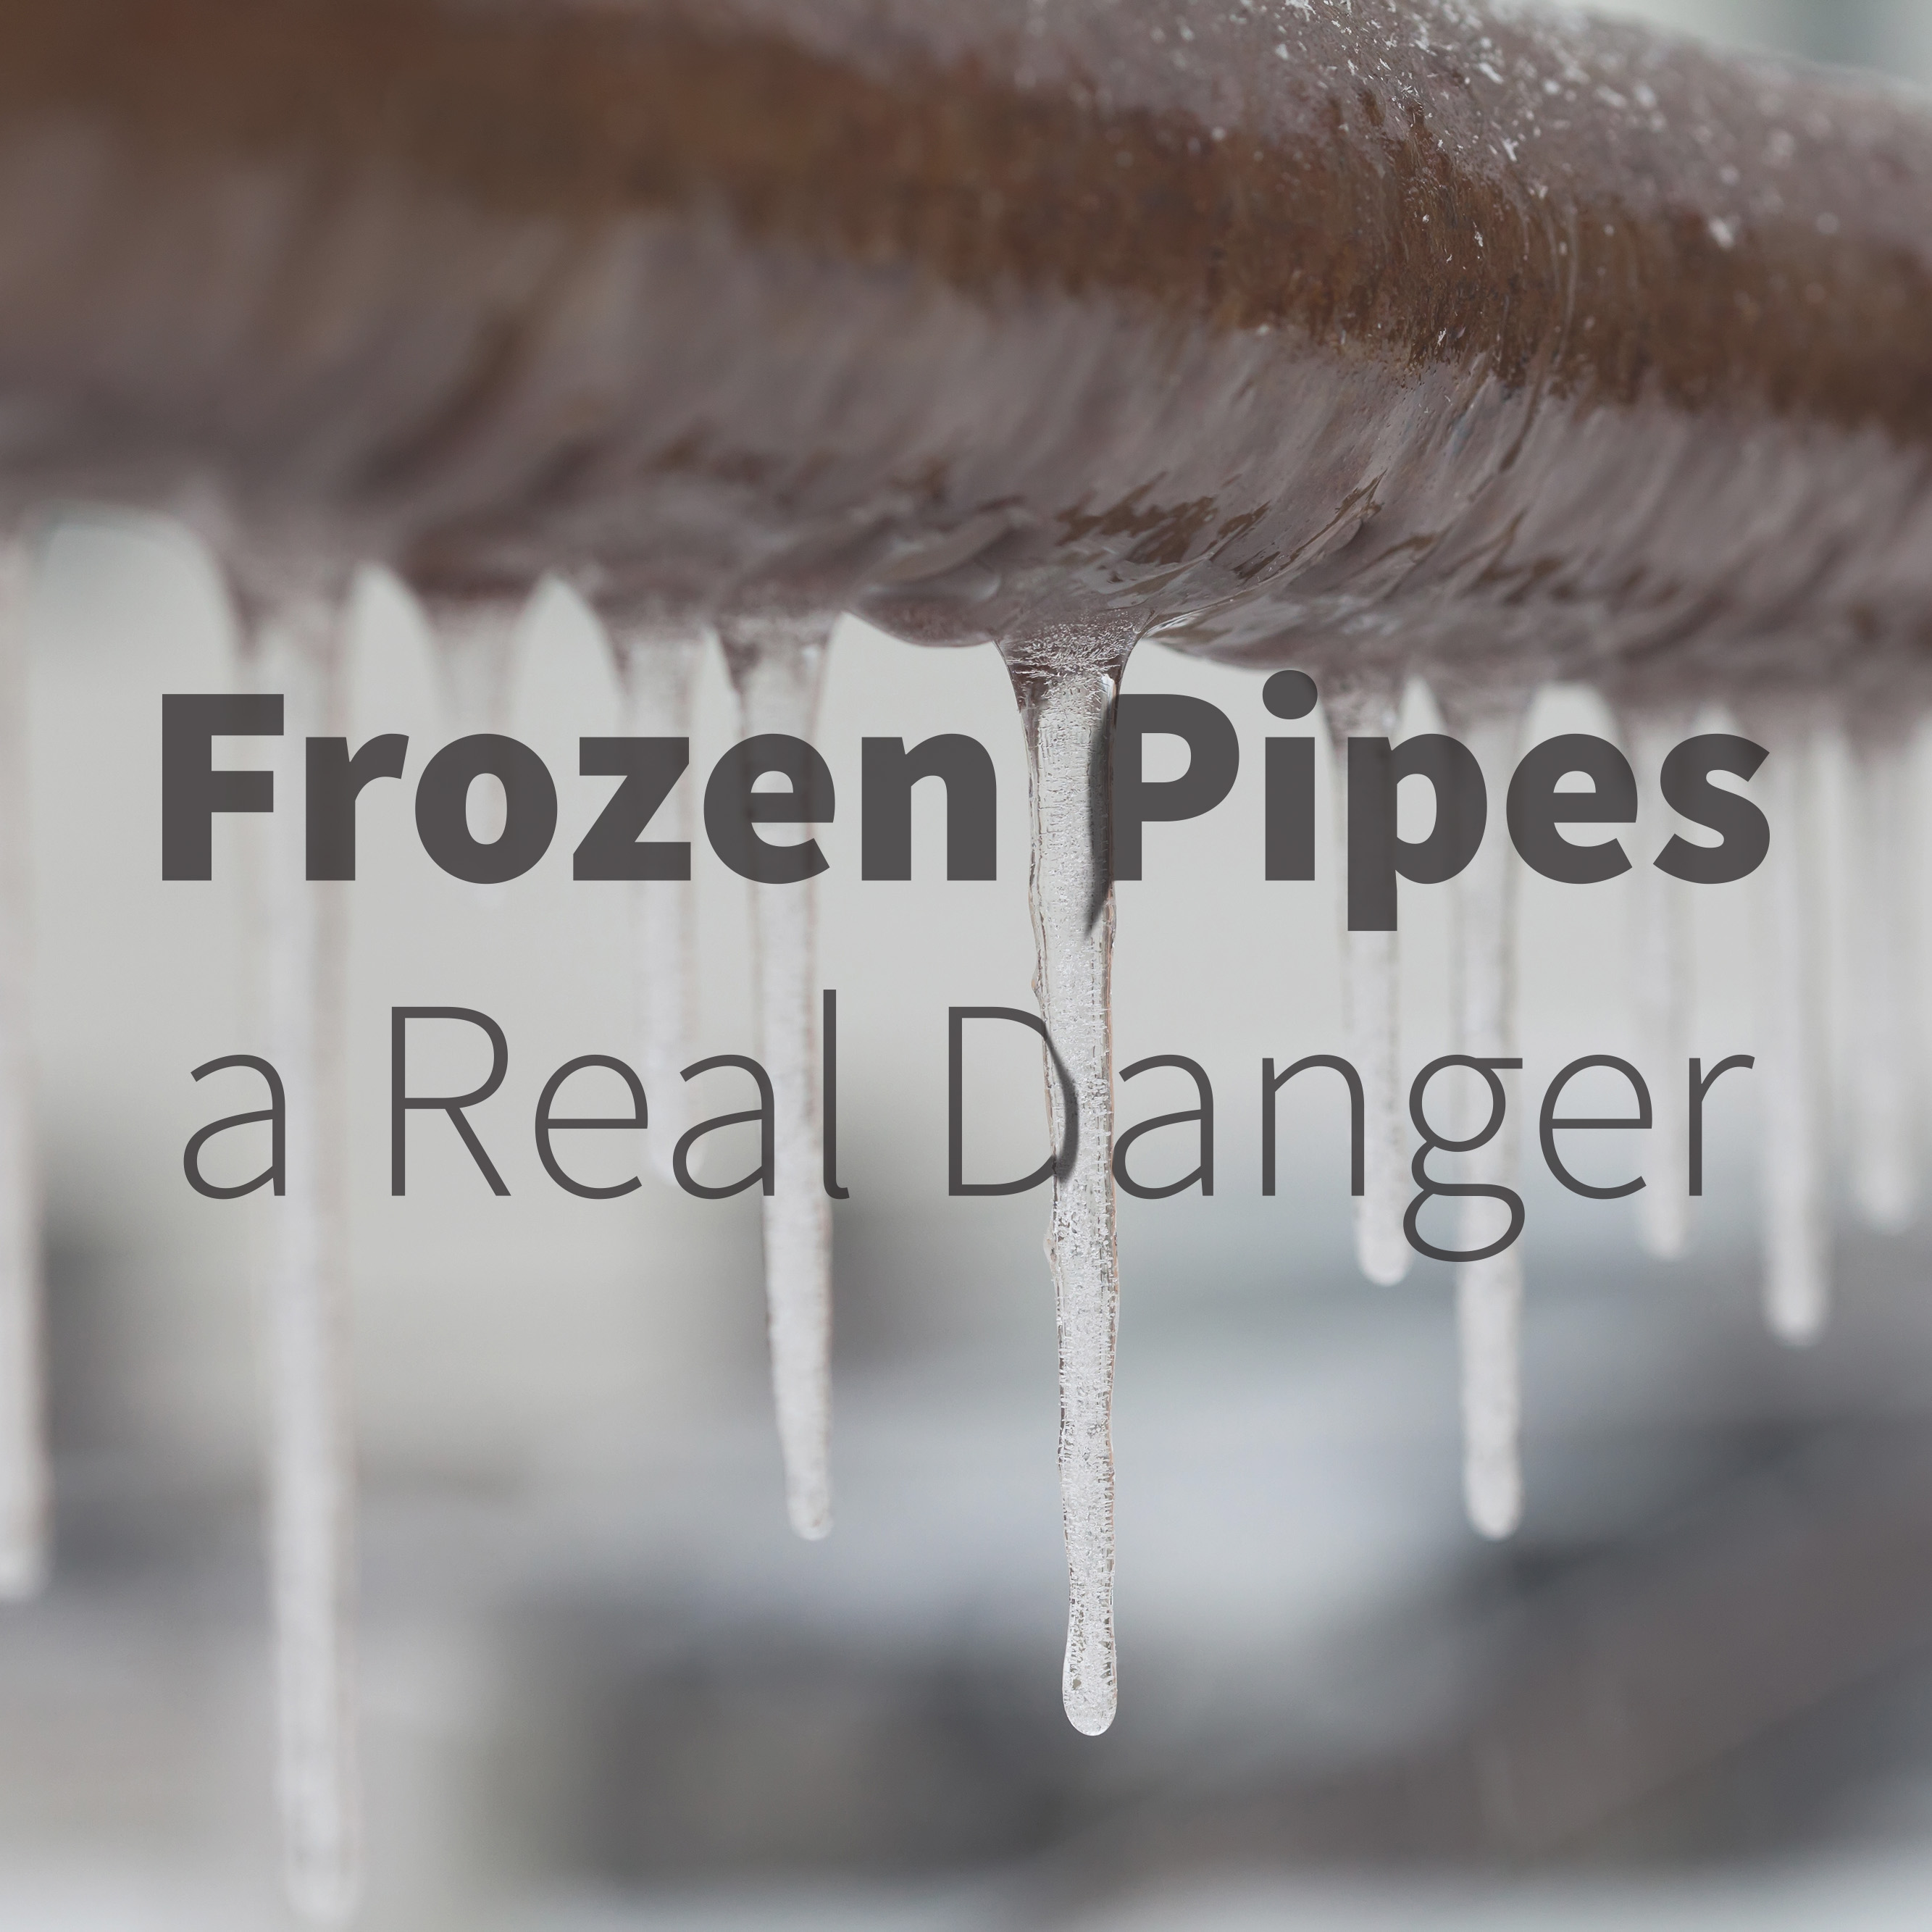 Frozen pipes blog.jpg